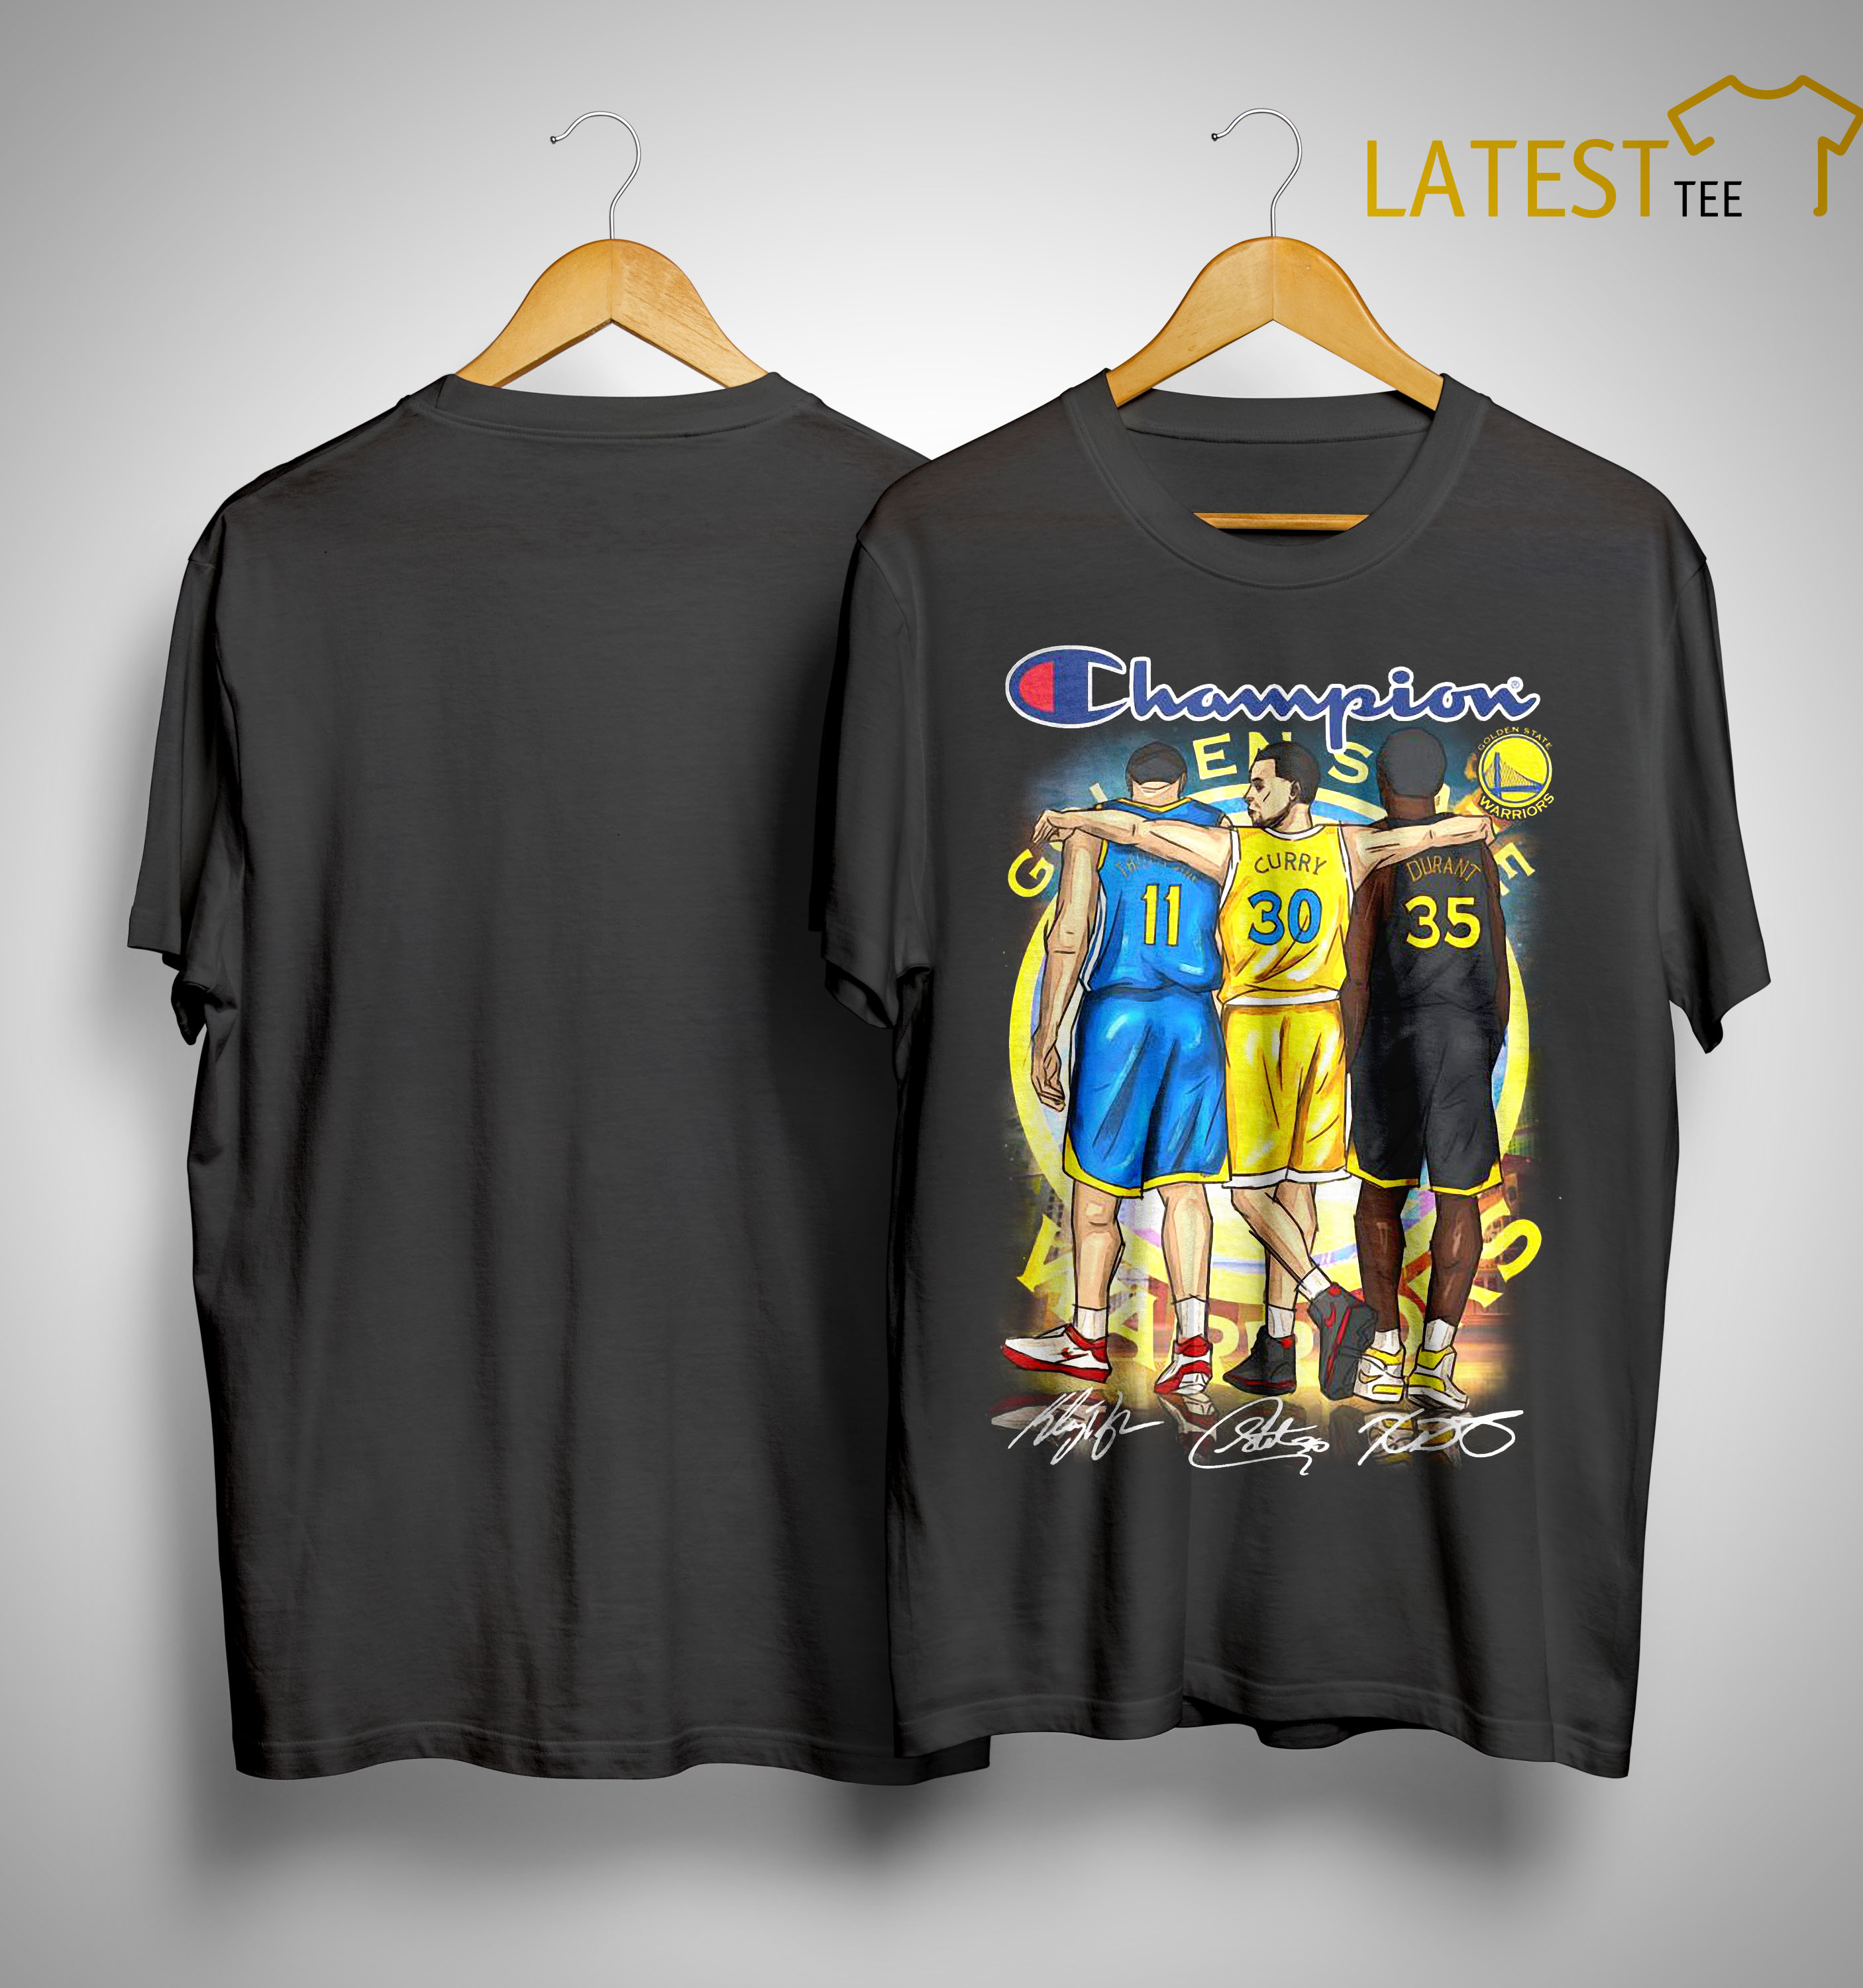 outlet store 8deb4 33624 Warriors Champion Steph Curry Klay Thompson And Kevin Durant Signatures  Shirt